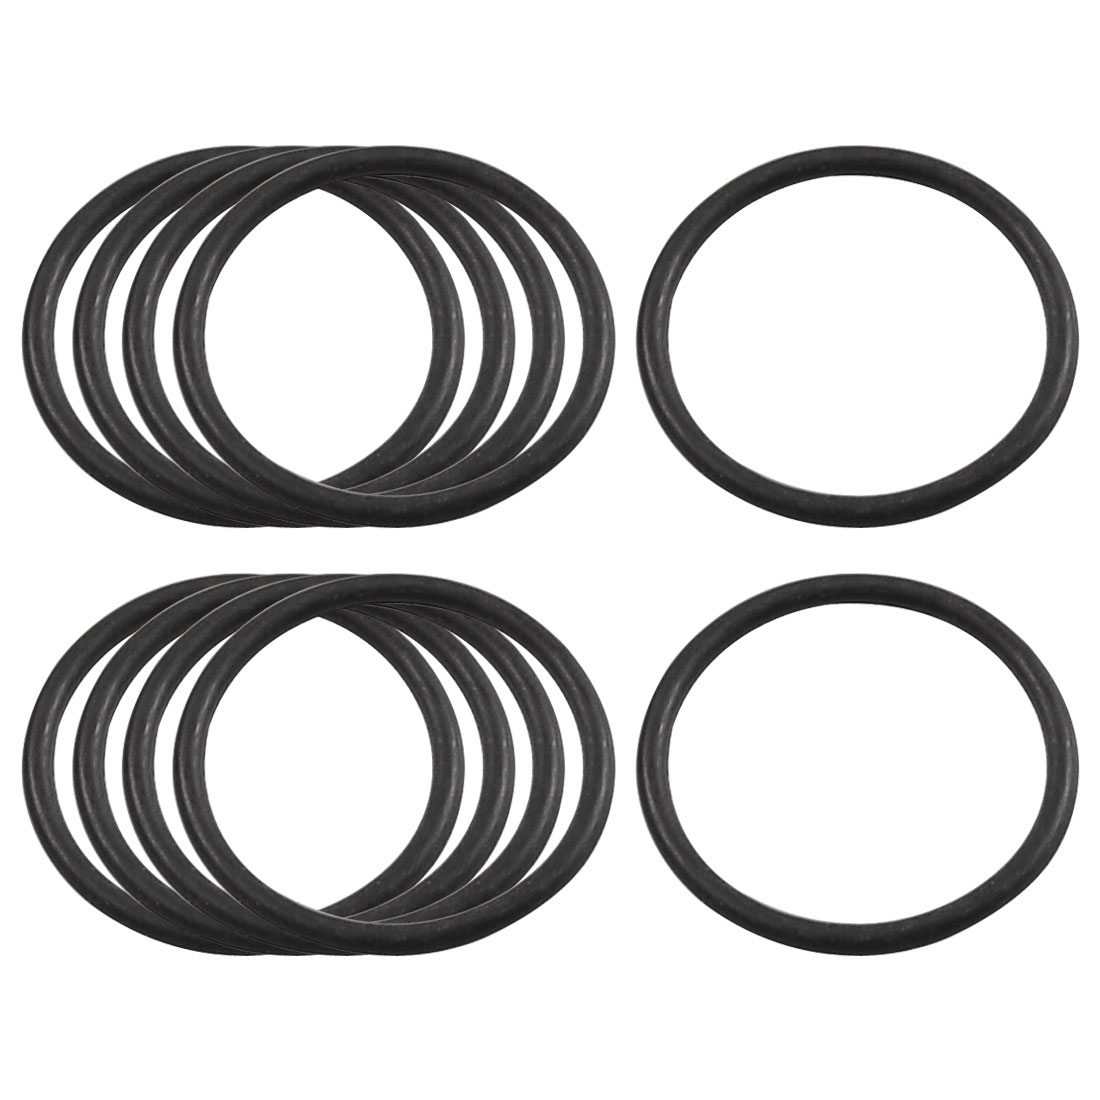 10 Pcs Black Rubber Flexible Oil Seal O Ring Gaskets 20mm x 1.8mm